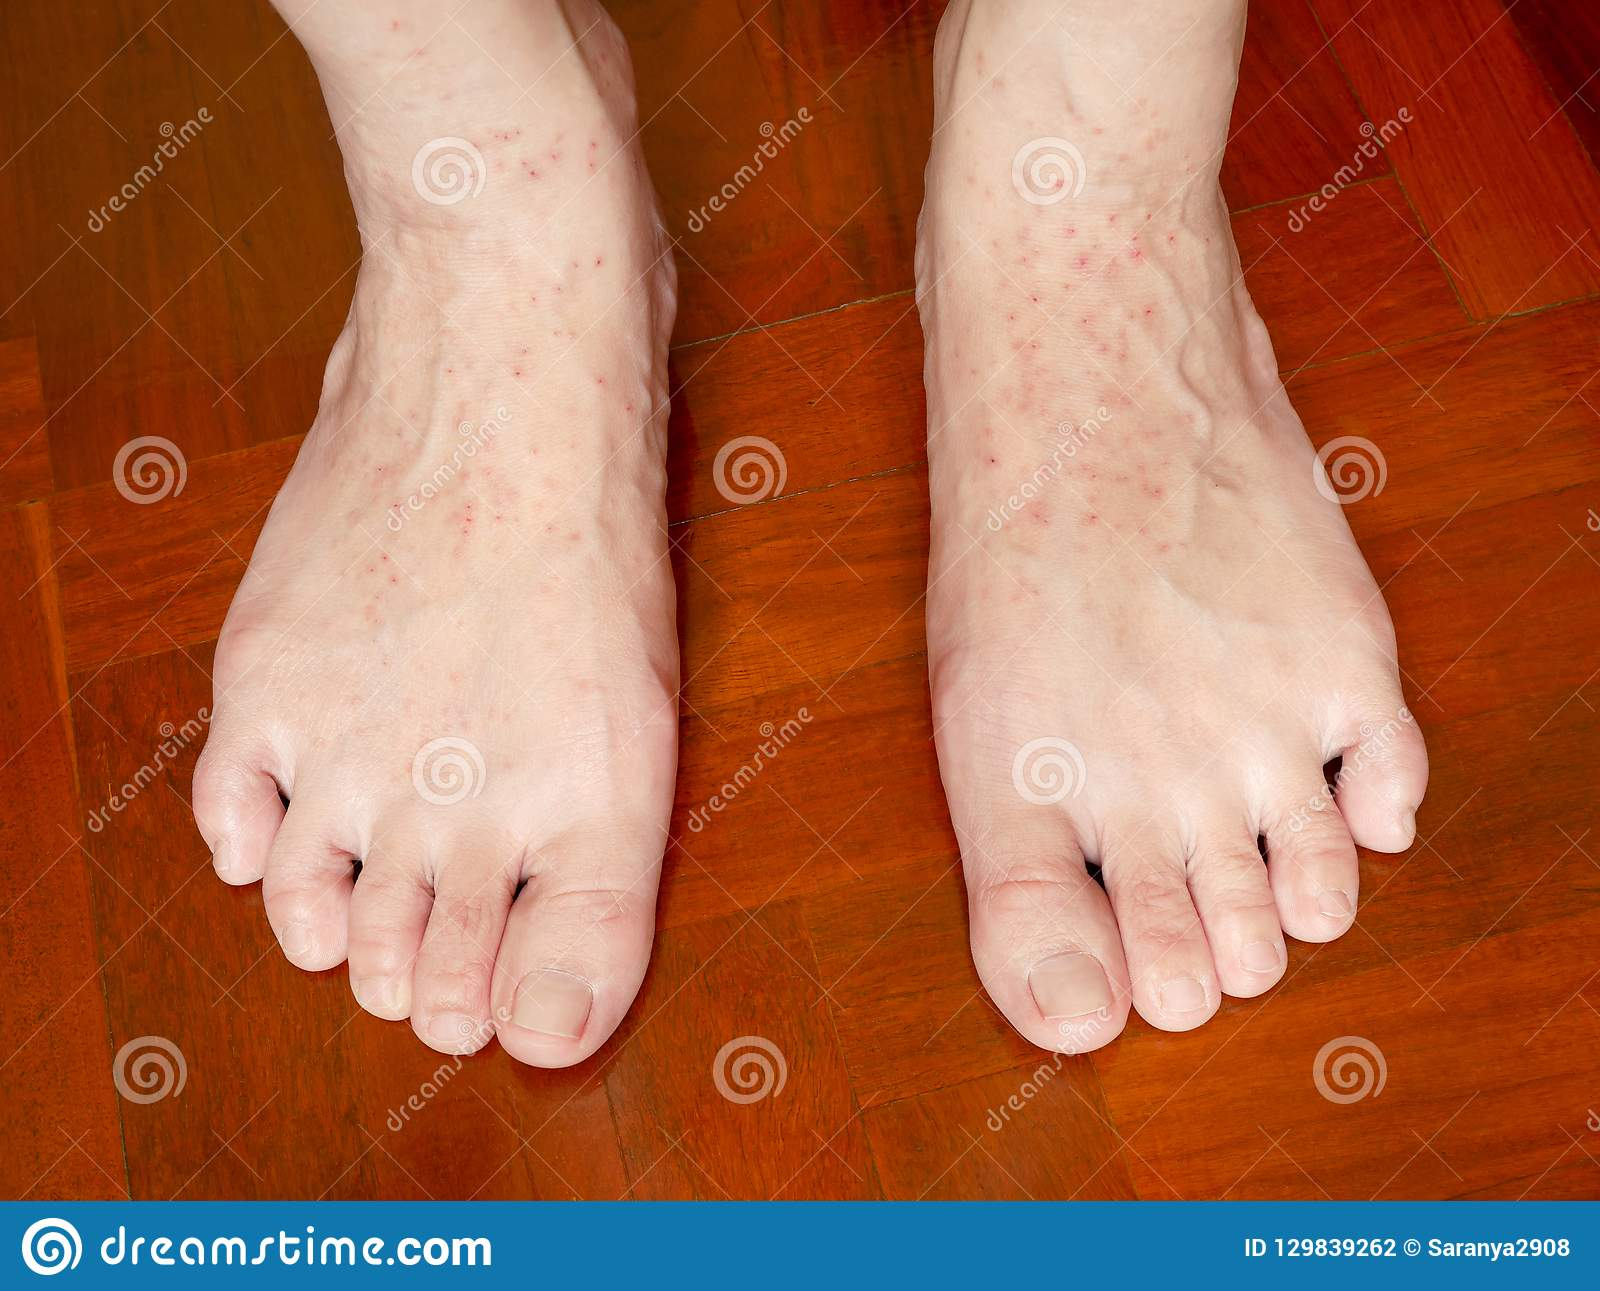 An Itchy Skin Rash On Woman`s Feet Stock Photo - Image of body